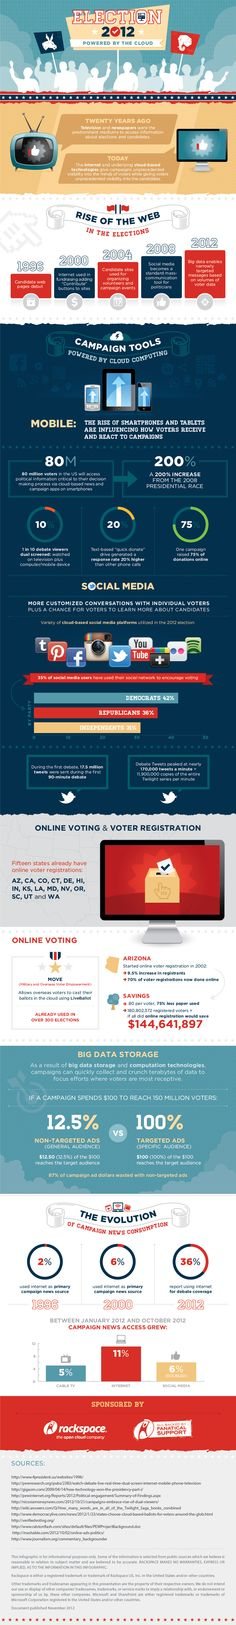 How The Cloud is Powering the 2012 U.S. Presidential Election